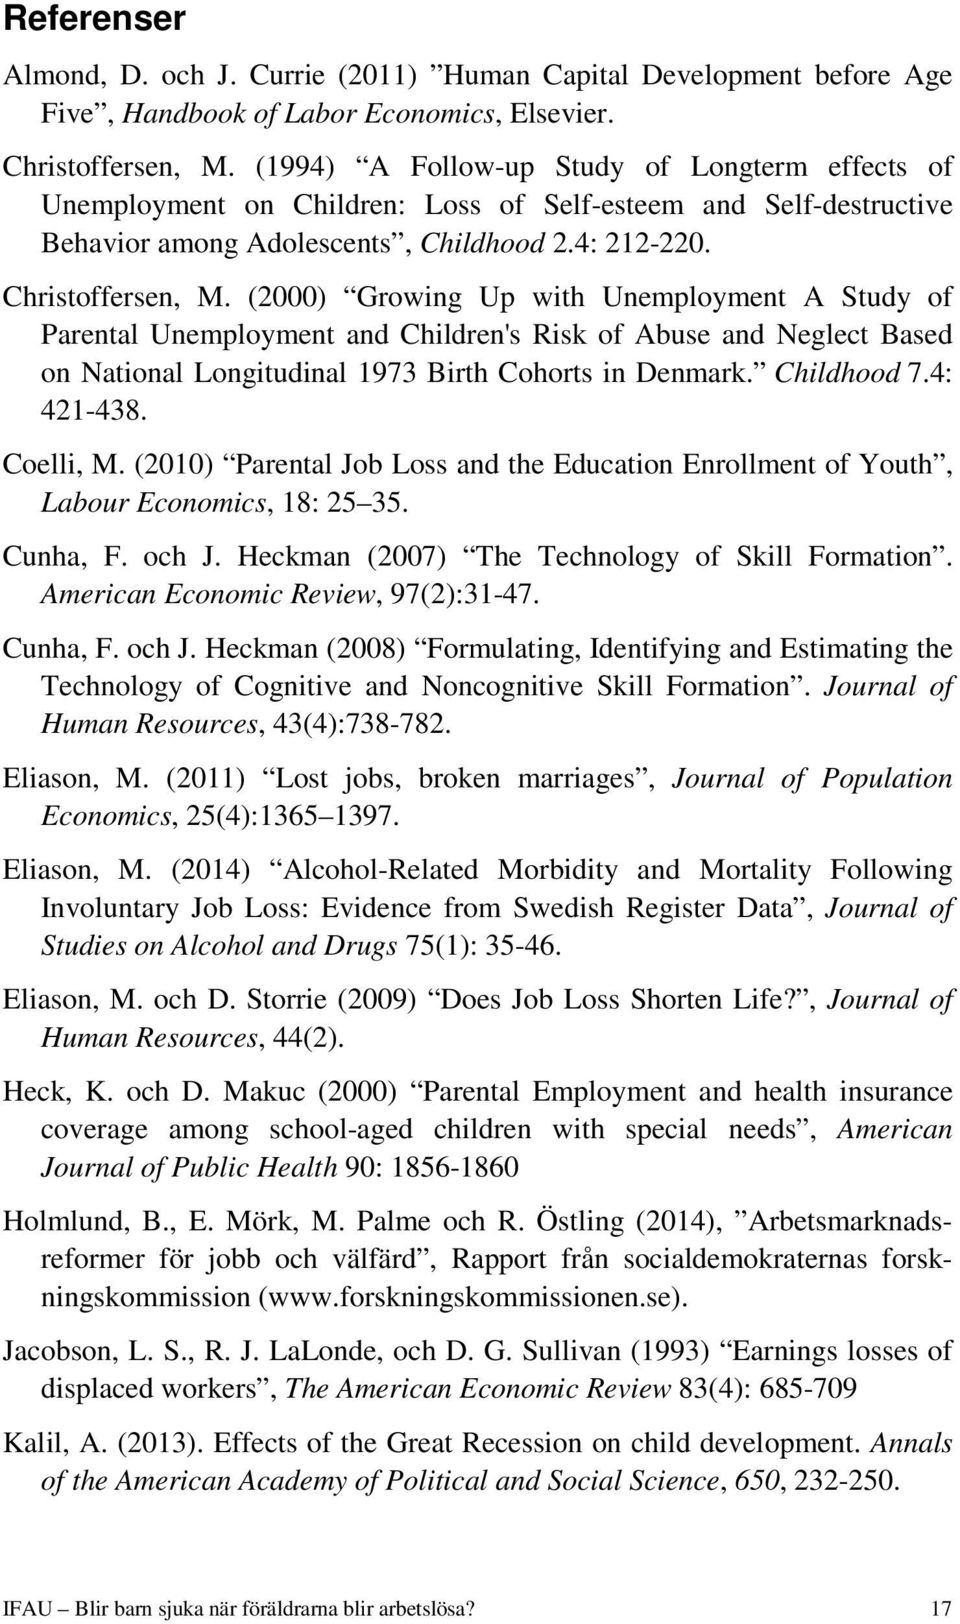 (2000) Growing Up with Unemployment A Study of Parental Unemployment and Children's Risk of Abuse and Neglect Based on National Longitudinal 1973 Birth Cohorts in Denmark. Childhood 7.4: 421-438.